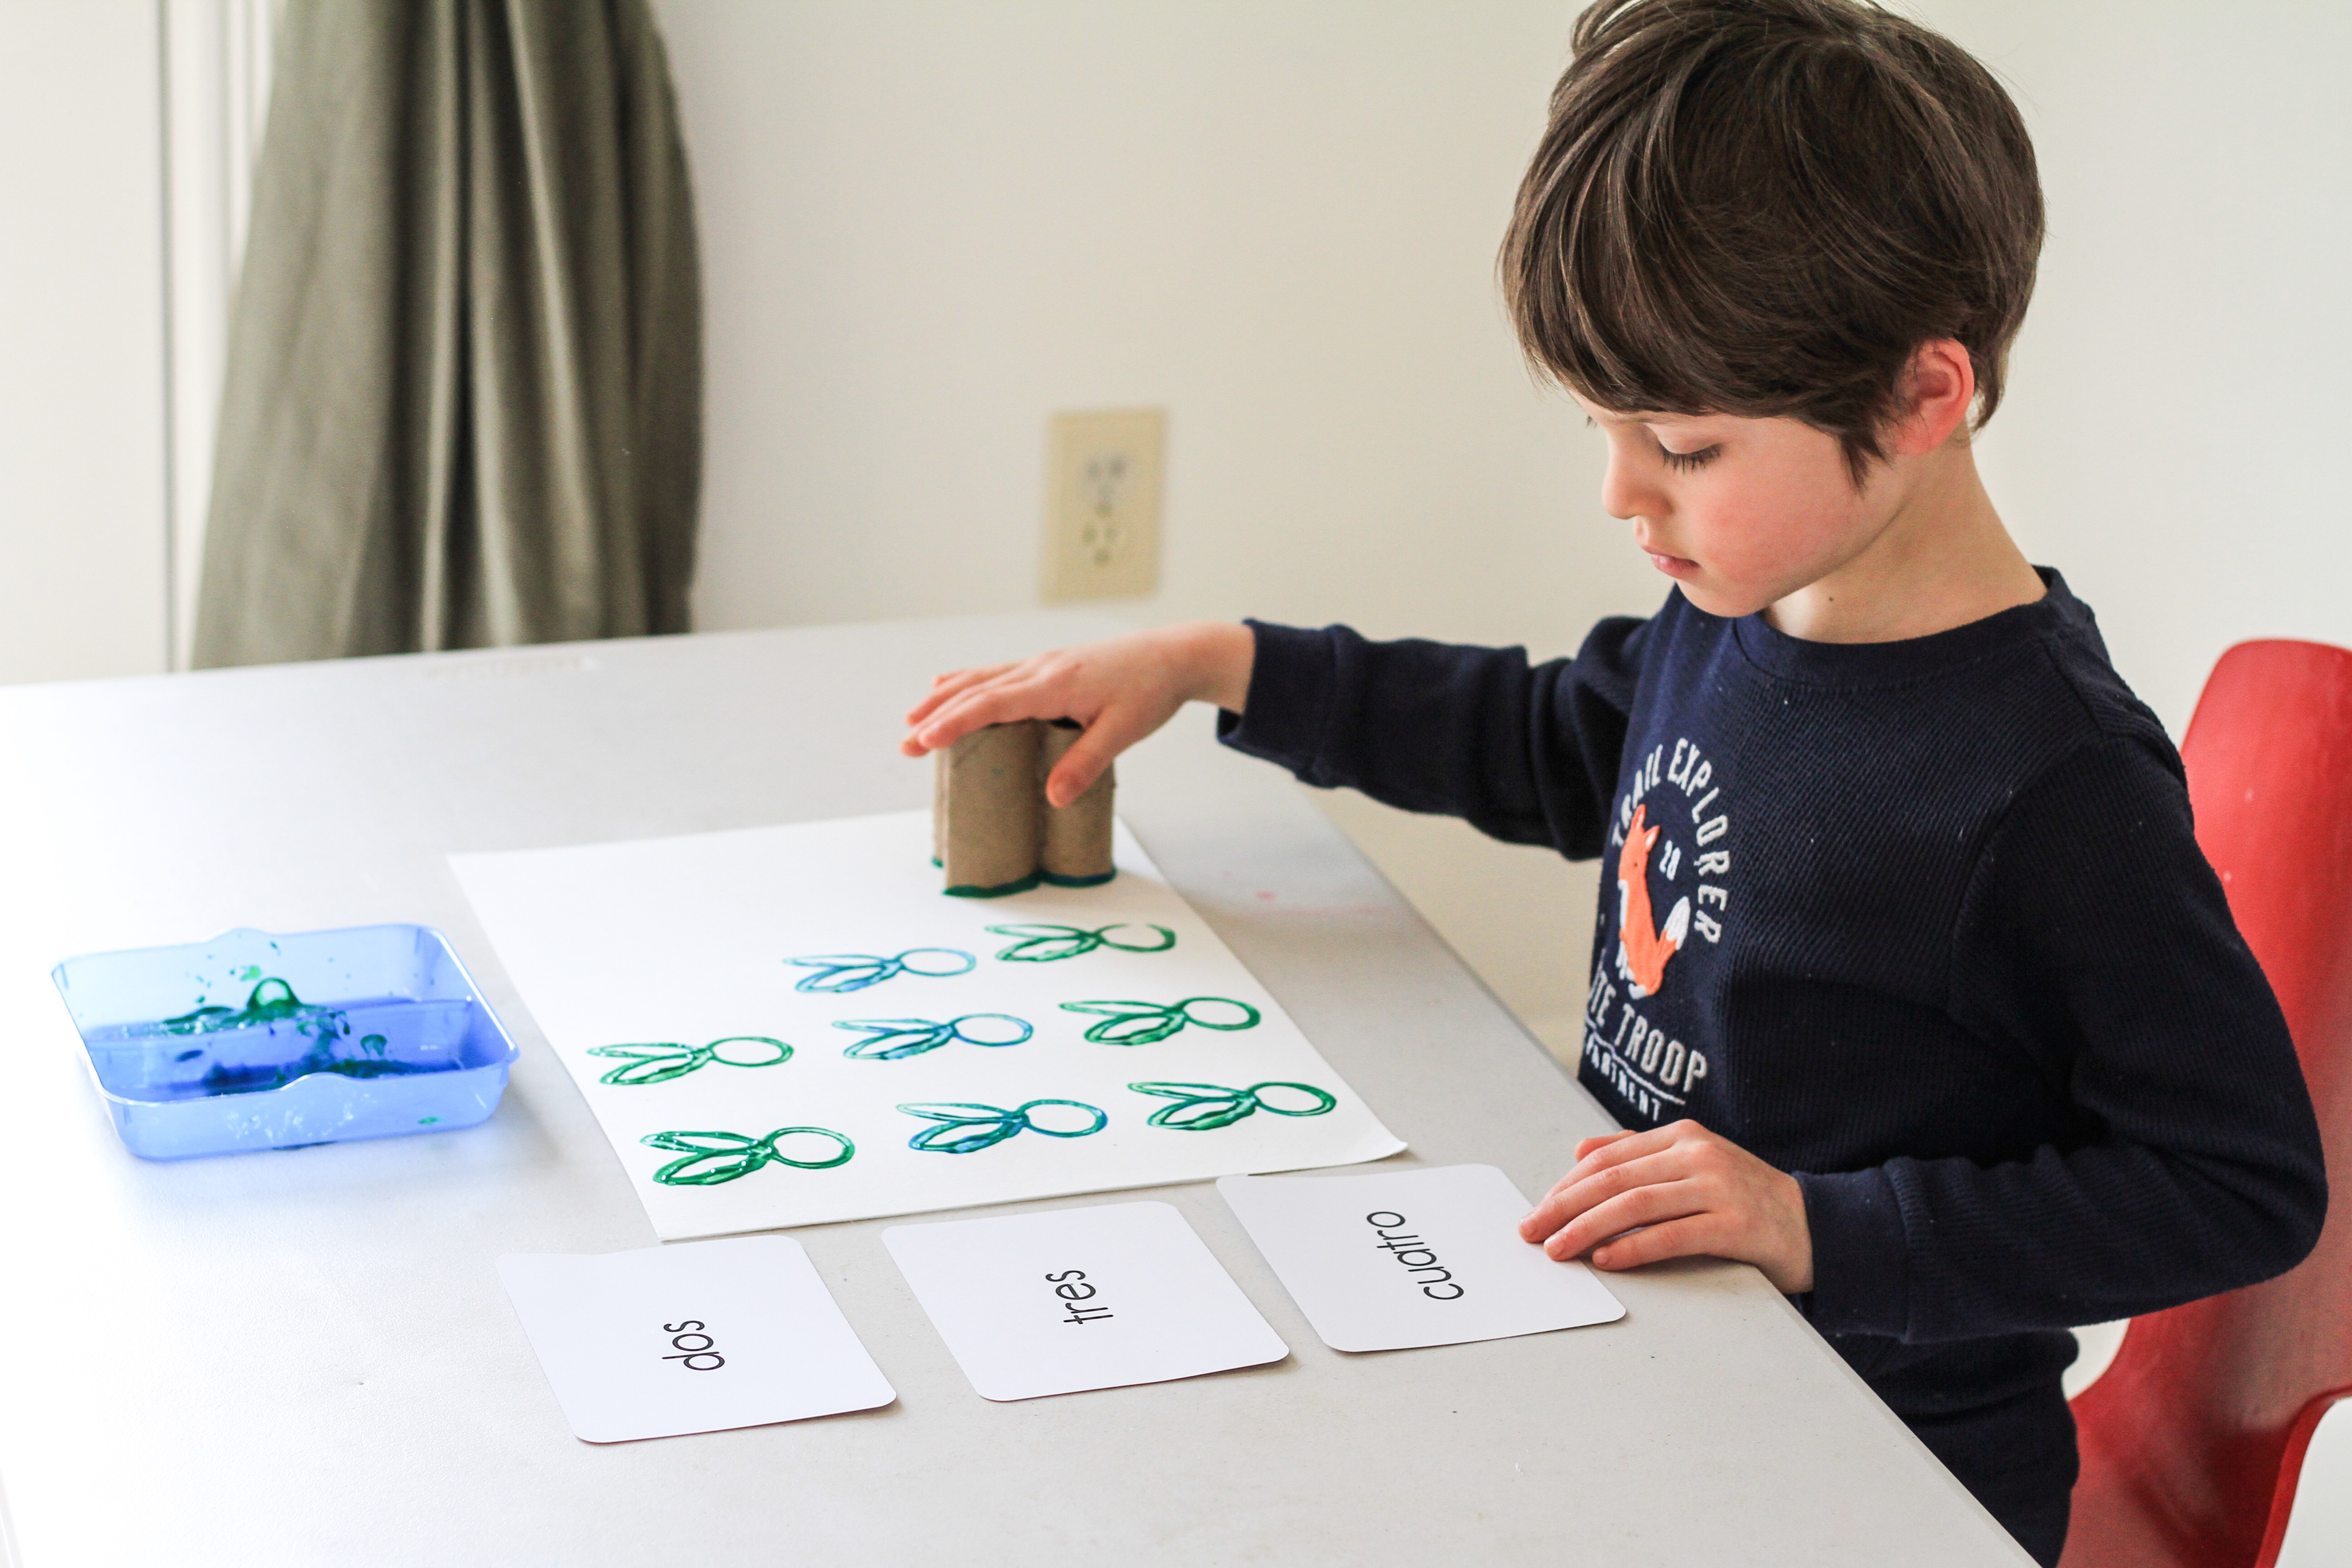 DIY stamping activities for kids easter craft sensory activities learning at home early learning traveling with kids mom blog dad blog travel blog worldschooling homeschooling art for kids toddler art easter art painting with kids 2018 Virginia Peru Colombia Europe United States California Education Counting with kids travel to learn